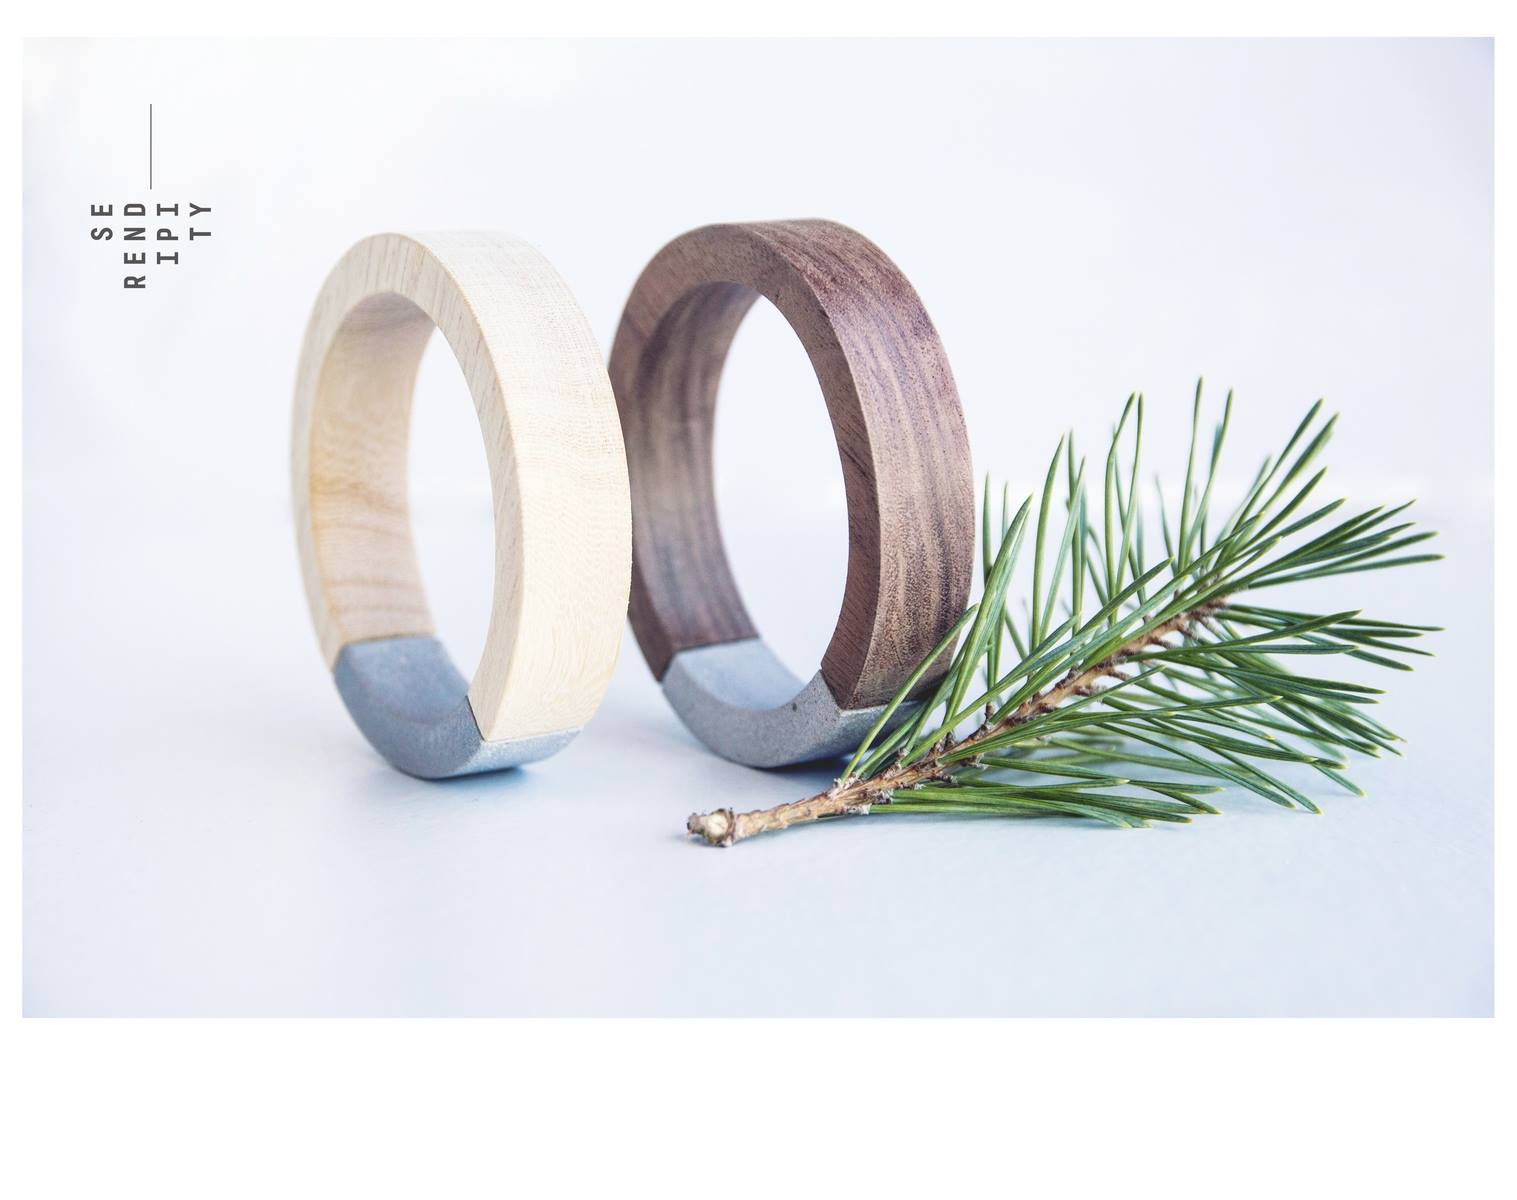 bangles collection: betoniño material: concrete, koto and pecan wood Дизайн: Катерина Сербезова